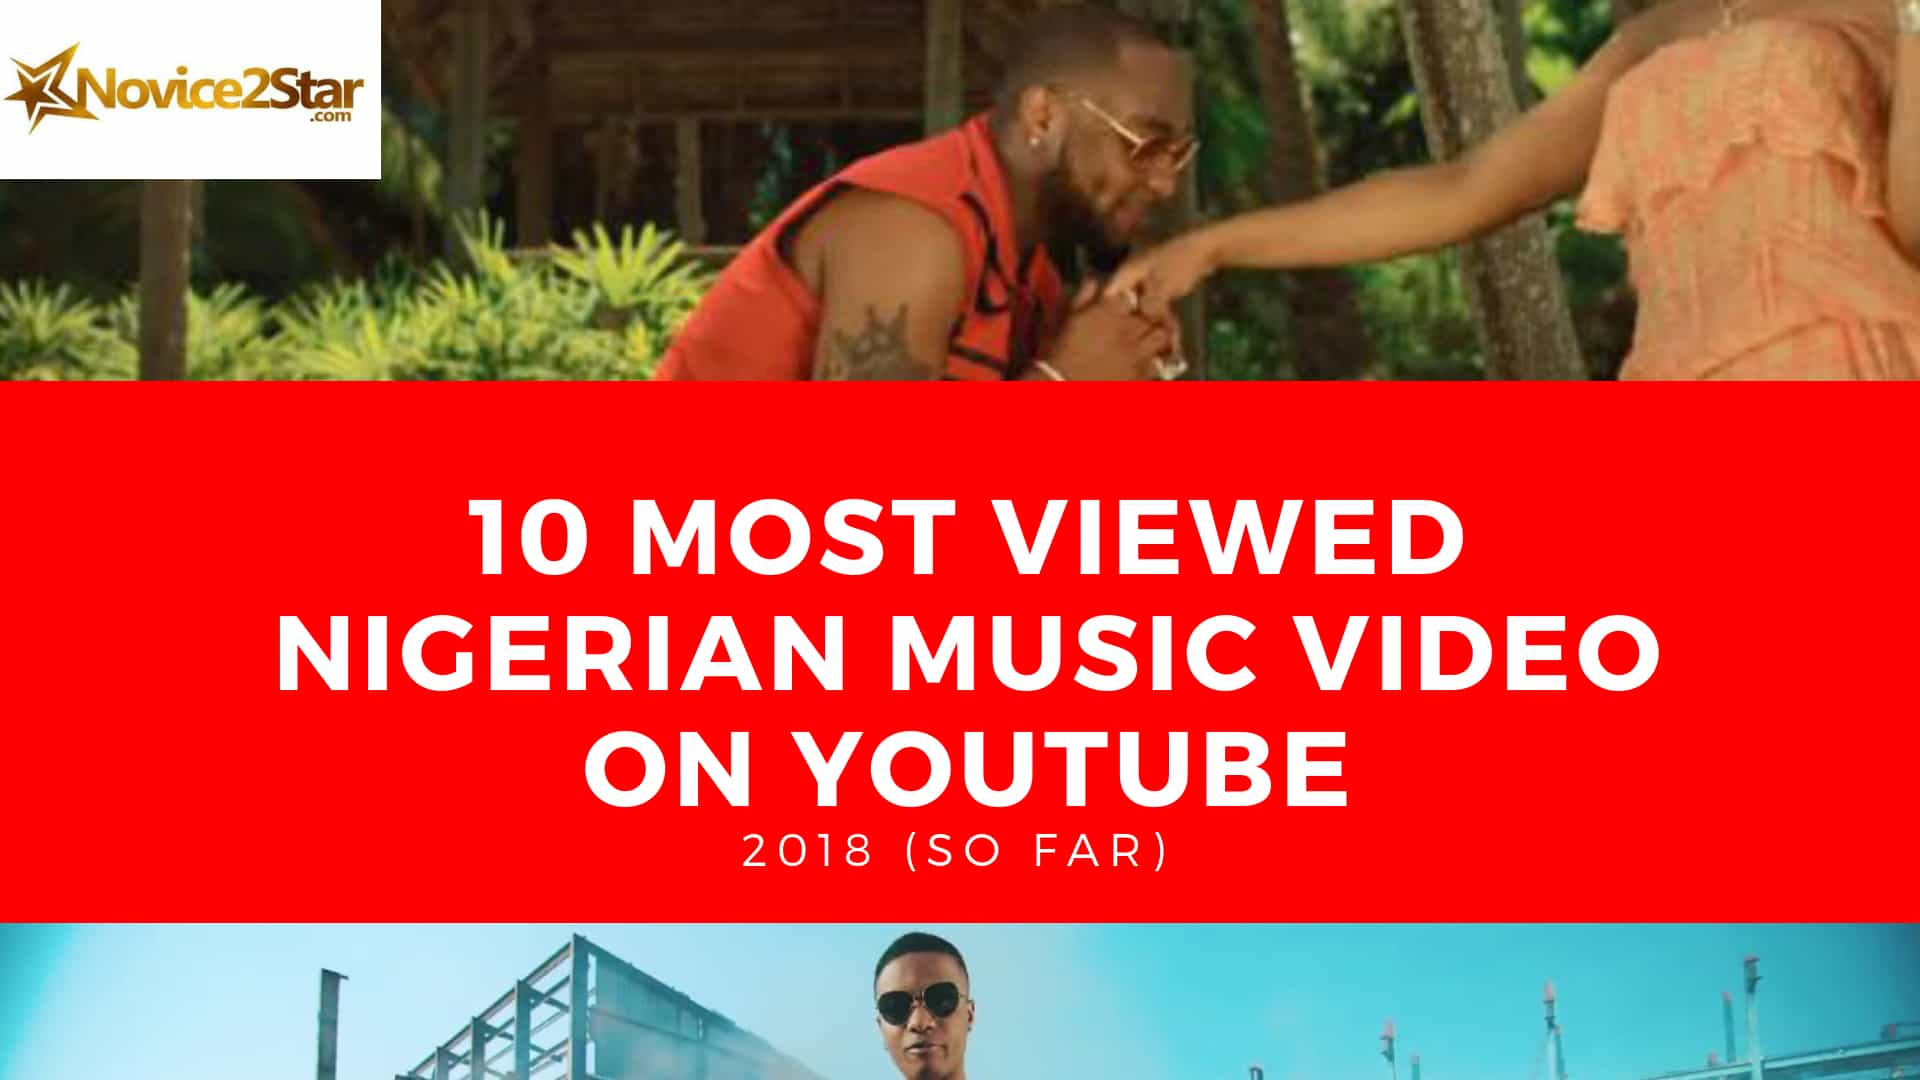 10 Most Viewed Nigerian Music Video On Youtube 2018 So Far Novice2star